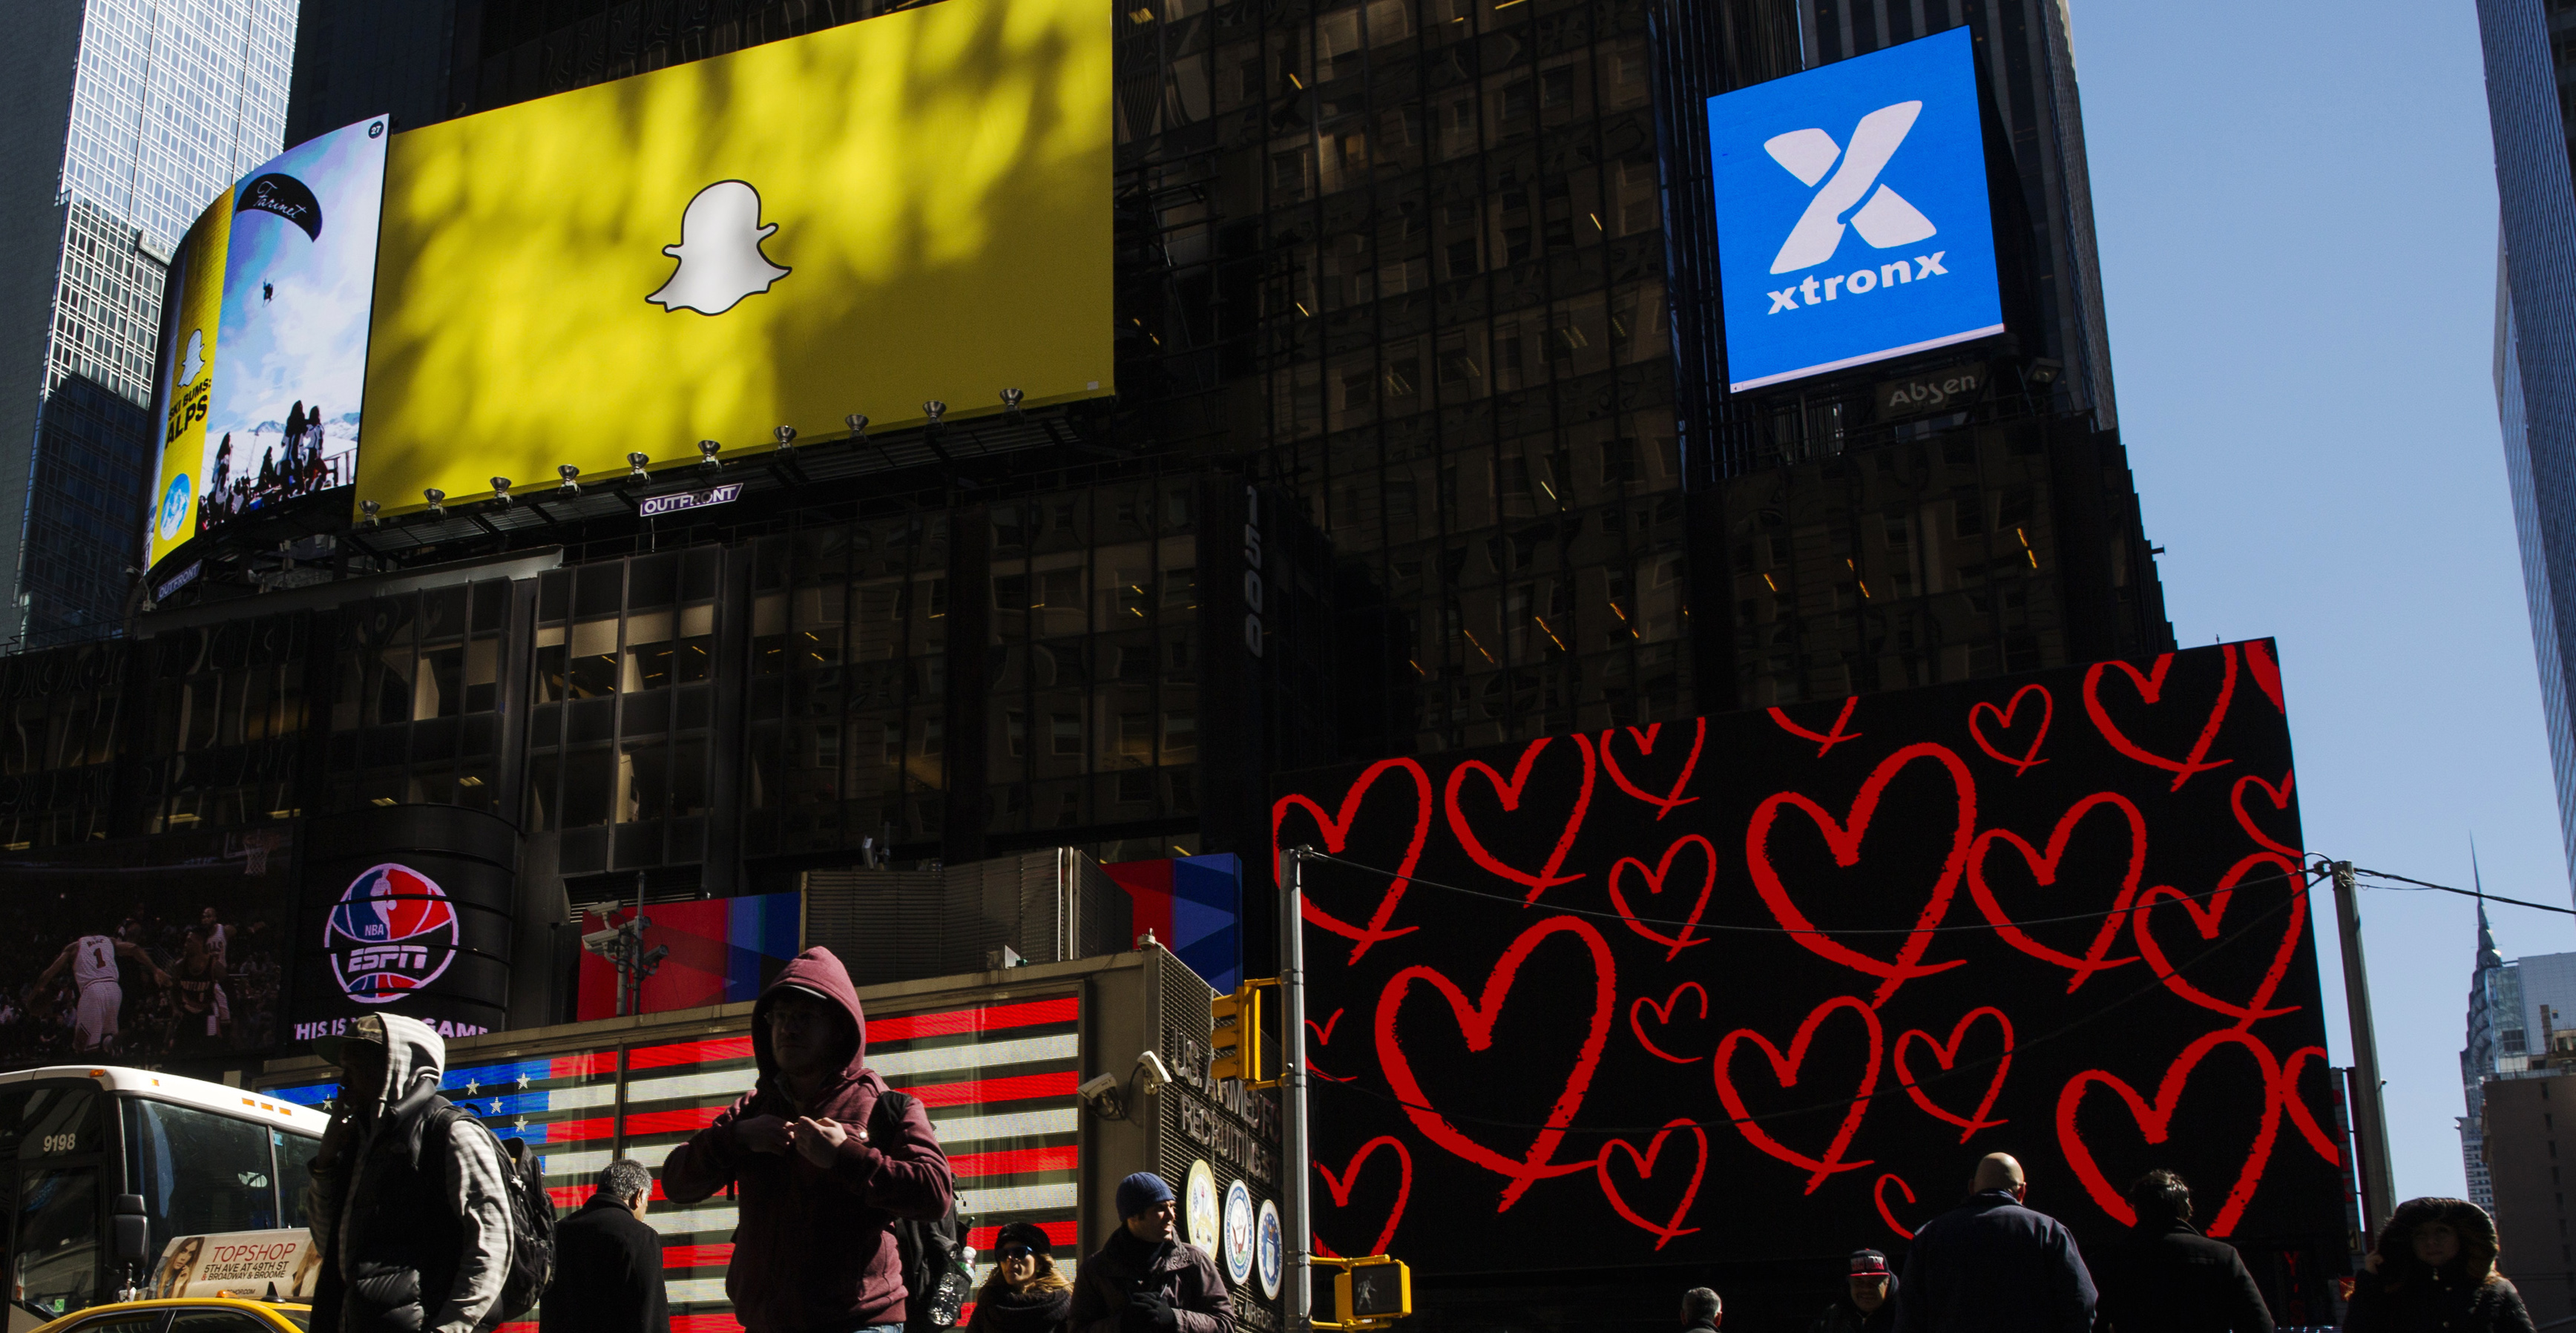 Pedestrians cross the street below a billboard displaying the logo of Snapchat above Times Square in New York March 12, 2015.